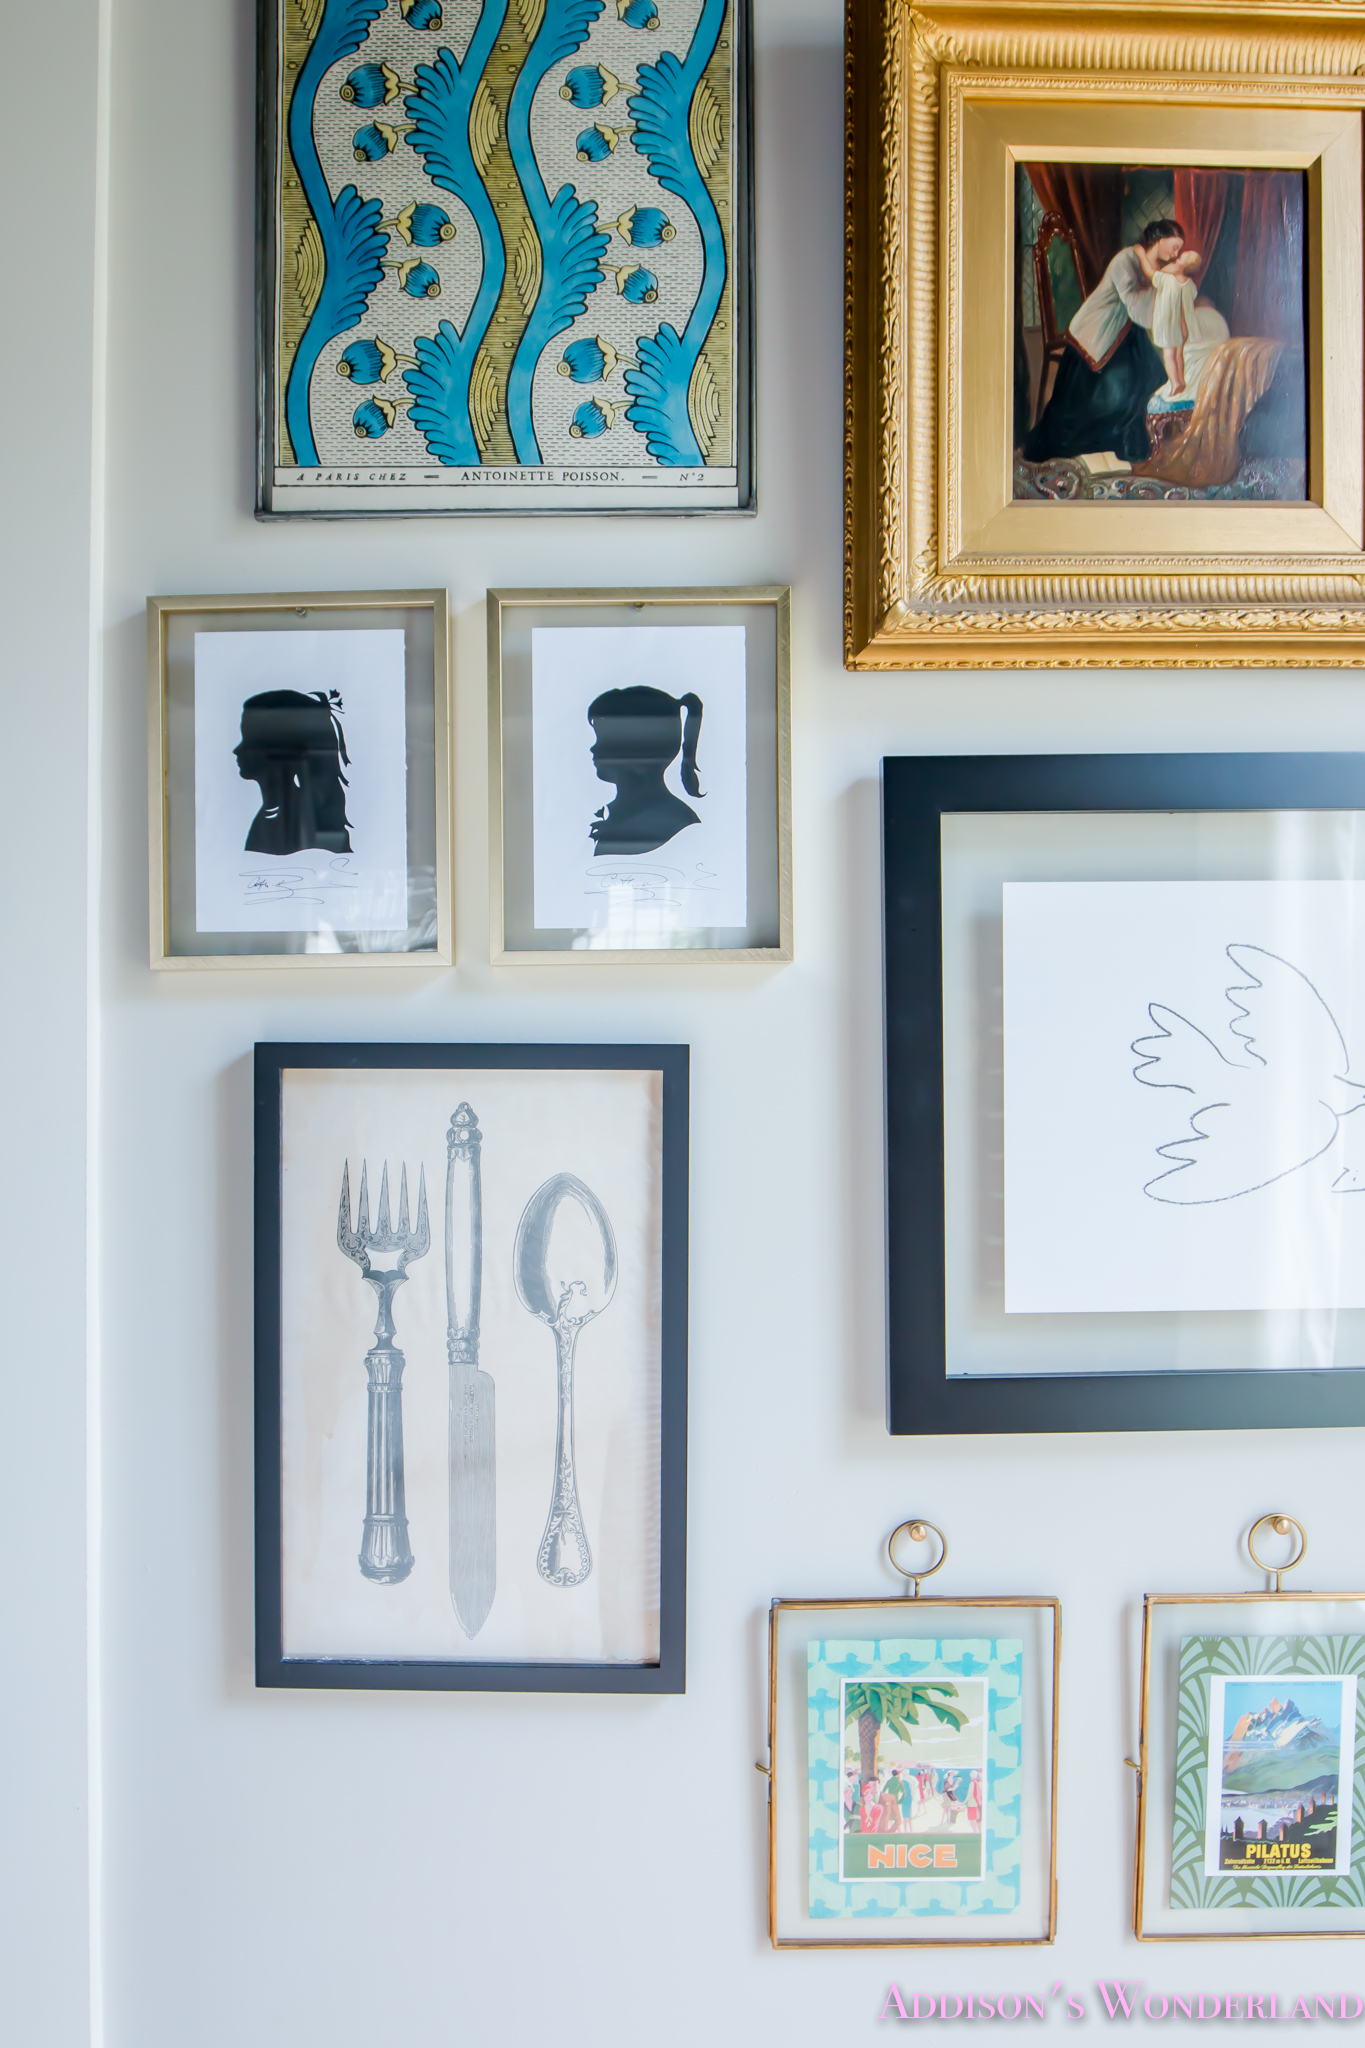 Our New Living Room Doorway Gallery Wall Reveal!